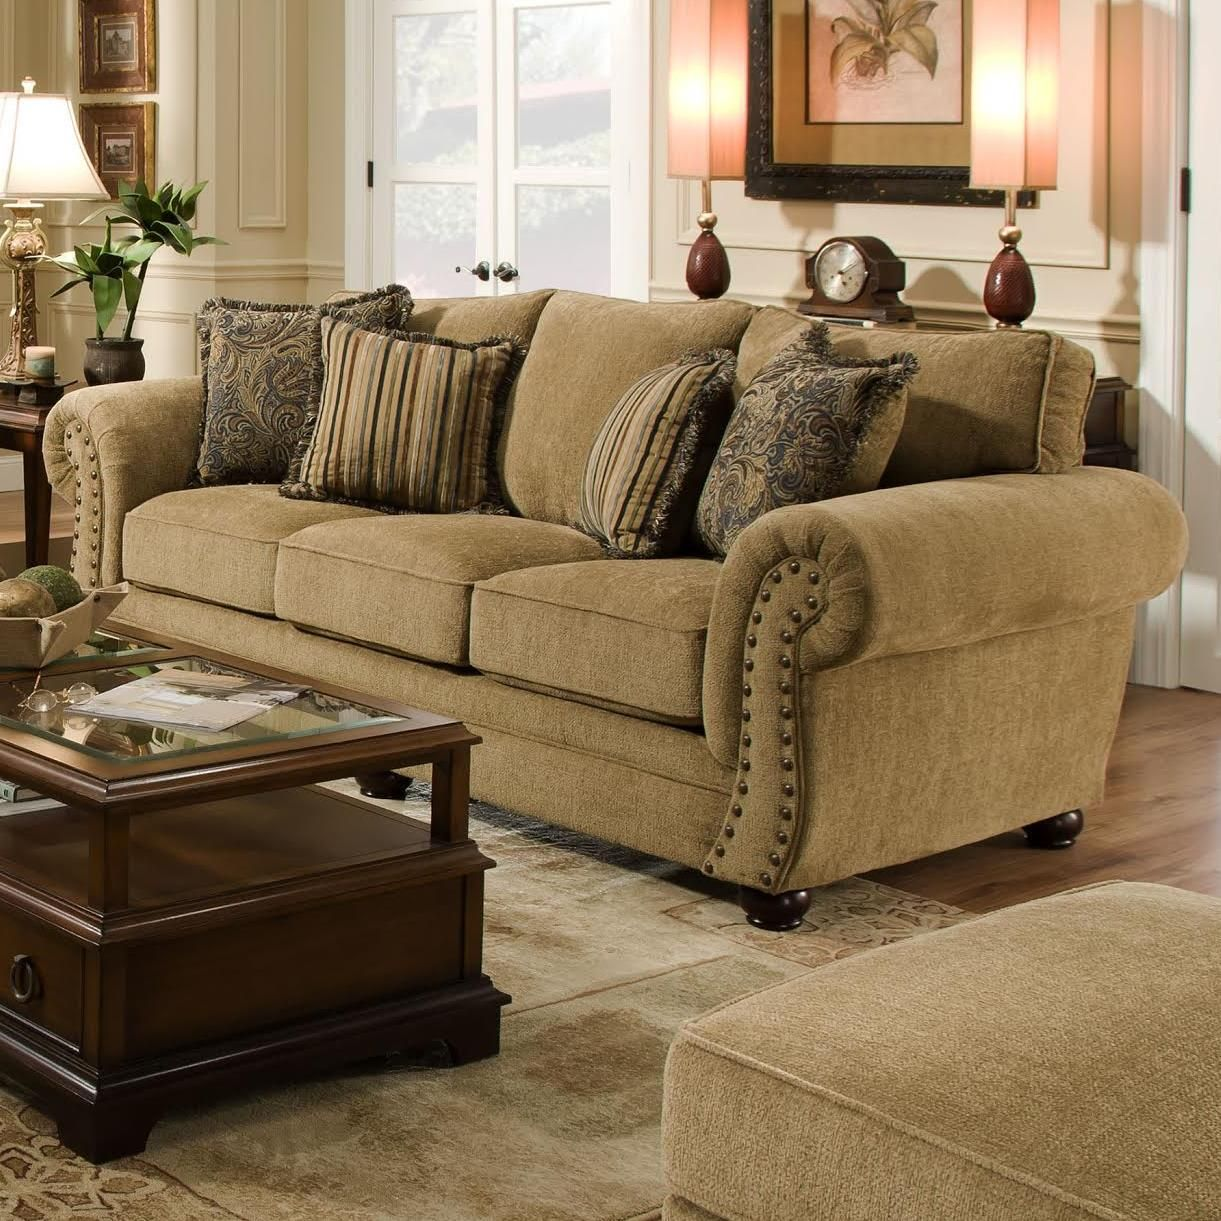 Traditional Sofas Living Room Furniture: 4277 Traditional Sofa With Rolled Arms And Nailhead Trim